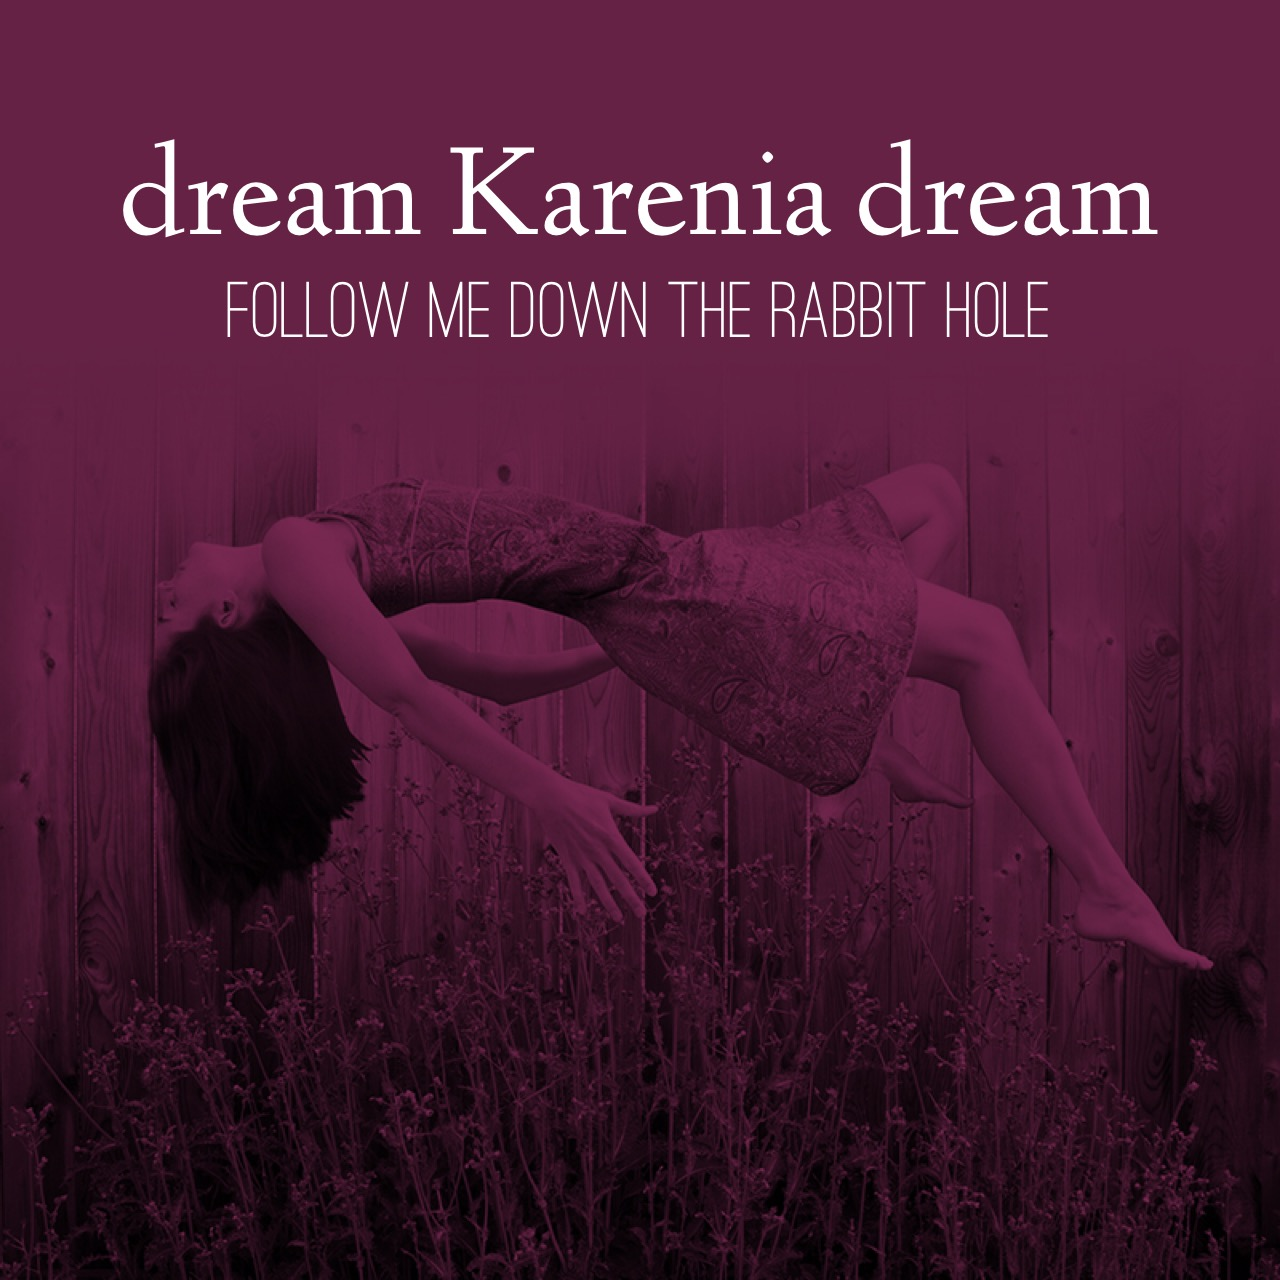 dream Karenia dream